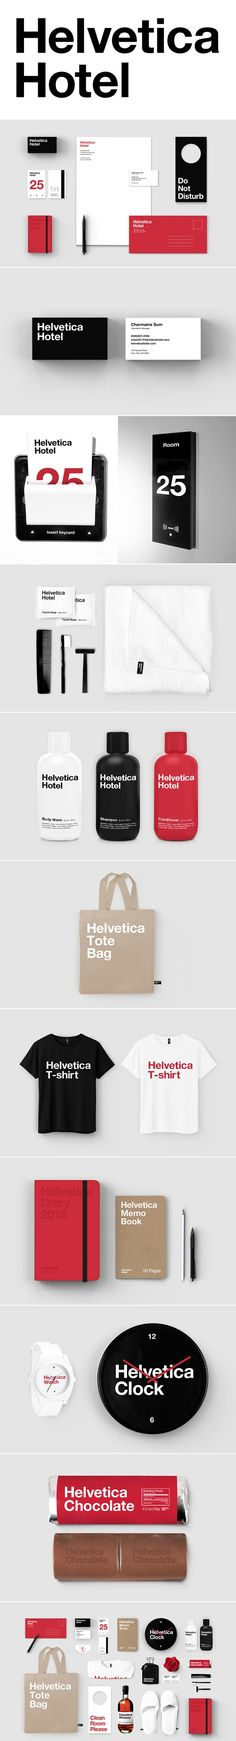 #Helvetica as a Hote